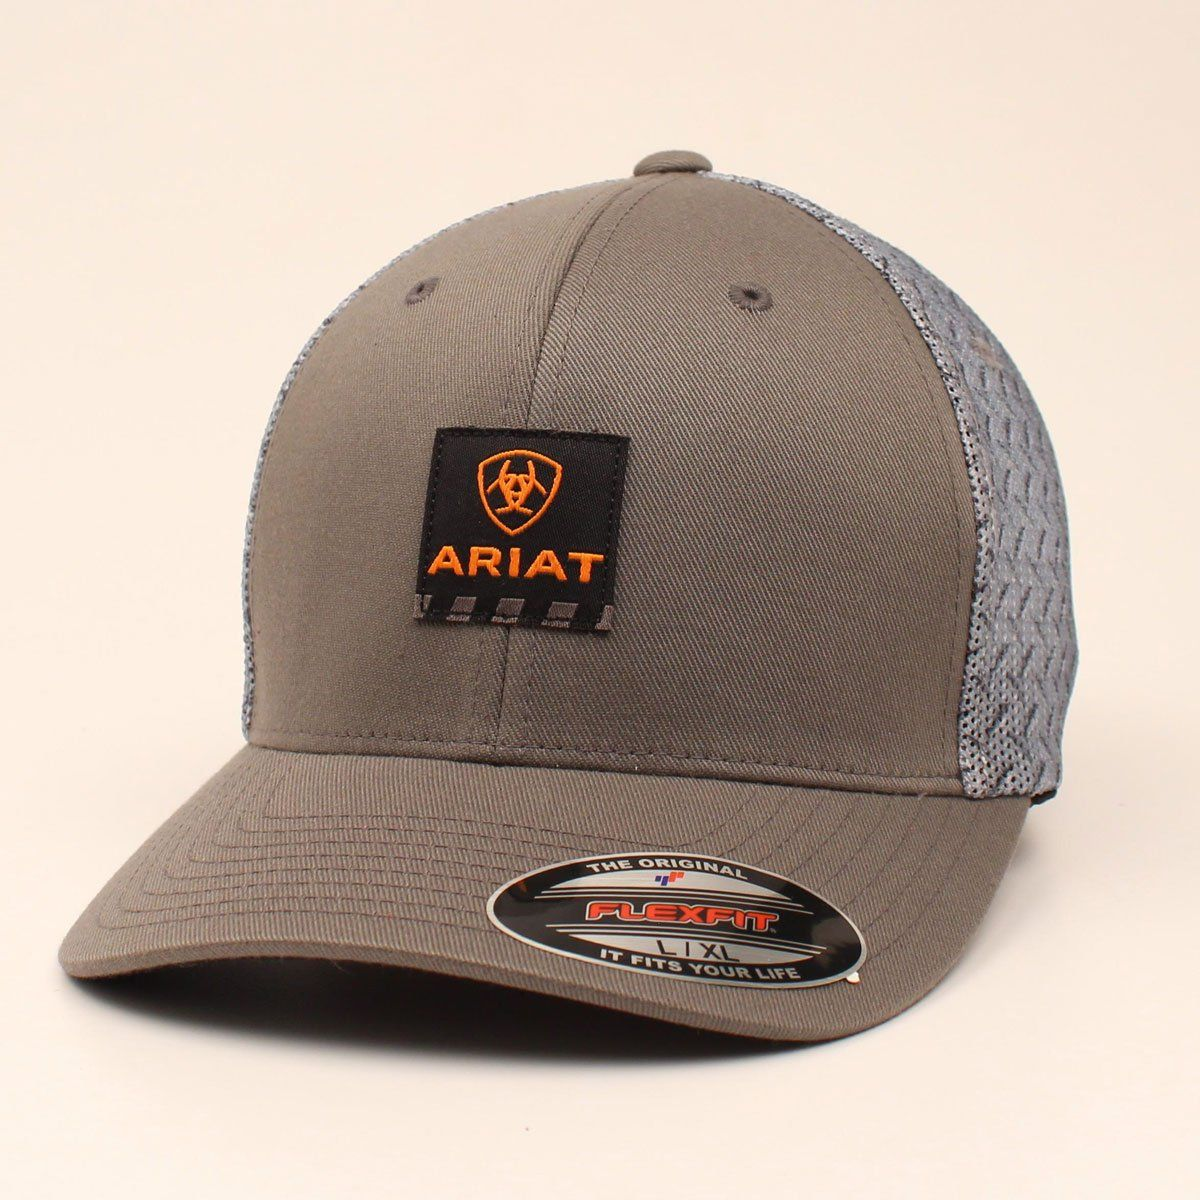 109a0521ef819 Ariat Men s Grey Flexfit Ball Cap A300002406 in 2019